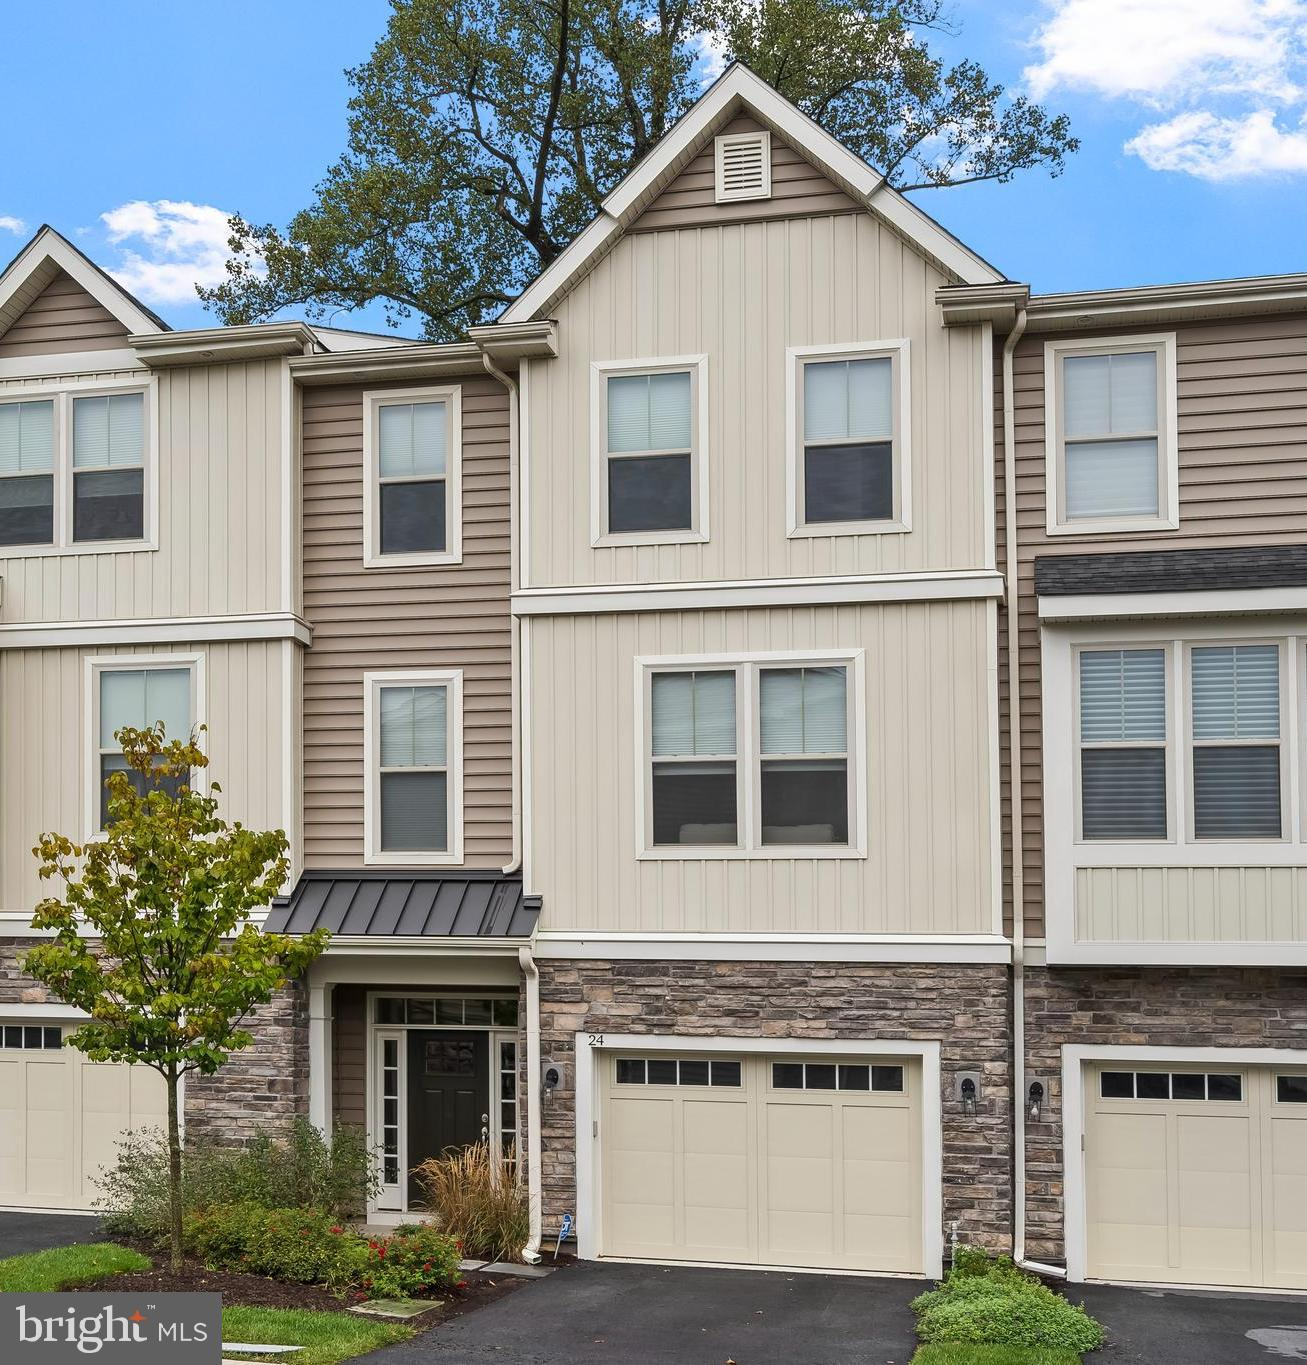 Do you dream of living in a newer Main Line home built by one of the area's most sought-after builders, but you don't need a huge single home? You will love this Bentley-built townhome, right on the Main Line in Paoli. Convenient to everything the area has to offer, Paoli Walk is a quiet and small community surrounded by mature landscaping and a walking trail, just minutes to the Paoli Train Station with direct Philly and NYC trains daily, the Paoli Hospital, Paoli Village Shoppes, Valley Forge Park, dozens of business parks, and so much more! This is easy living at its finest! There is nothing to do here except unpack, sit back, relax, enjoy some Netflix on the sofa, coffee on the deck, a little work from your home office, then head out for the night – or even head out on vacation – without worrying about taking care of the yardwork or maintenance. Bentley Homes is known for their top-notch craftsmanship and building properties with the discerning homeowner and their lifestyle in mind. Tall ceilings, beautiful woodwork, hardwood floors throughout, high end finishes, and a modern flexible floorplan are just the beginning. The entry level greets you and your guests in a cheery foyer with a custom crafted bench area for coats and shoes. This level was recently upgraded to include a new bonus room and a new powder room, and has direct access to the garage. Upstairs the main level features an open layout, floor to ceiling windows, and sliding glass doors to the private rear deck overlooking the woods. The spacious chef's kitchen offers endless counterspace for entertaining, or to enjoy the company of a few sous chefs while preparing everyday meals. Just beyond the kitchen is a dedicated office that overlooks the front of the home, and a stylish powder room with upgraded fixtures, vanity, marble countertop, and lighting.  The upper level hosts the primary bedroom suite with two spacious closets, a luxurious bathroom with a private shower/toilet room, linen closet, a doub